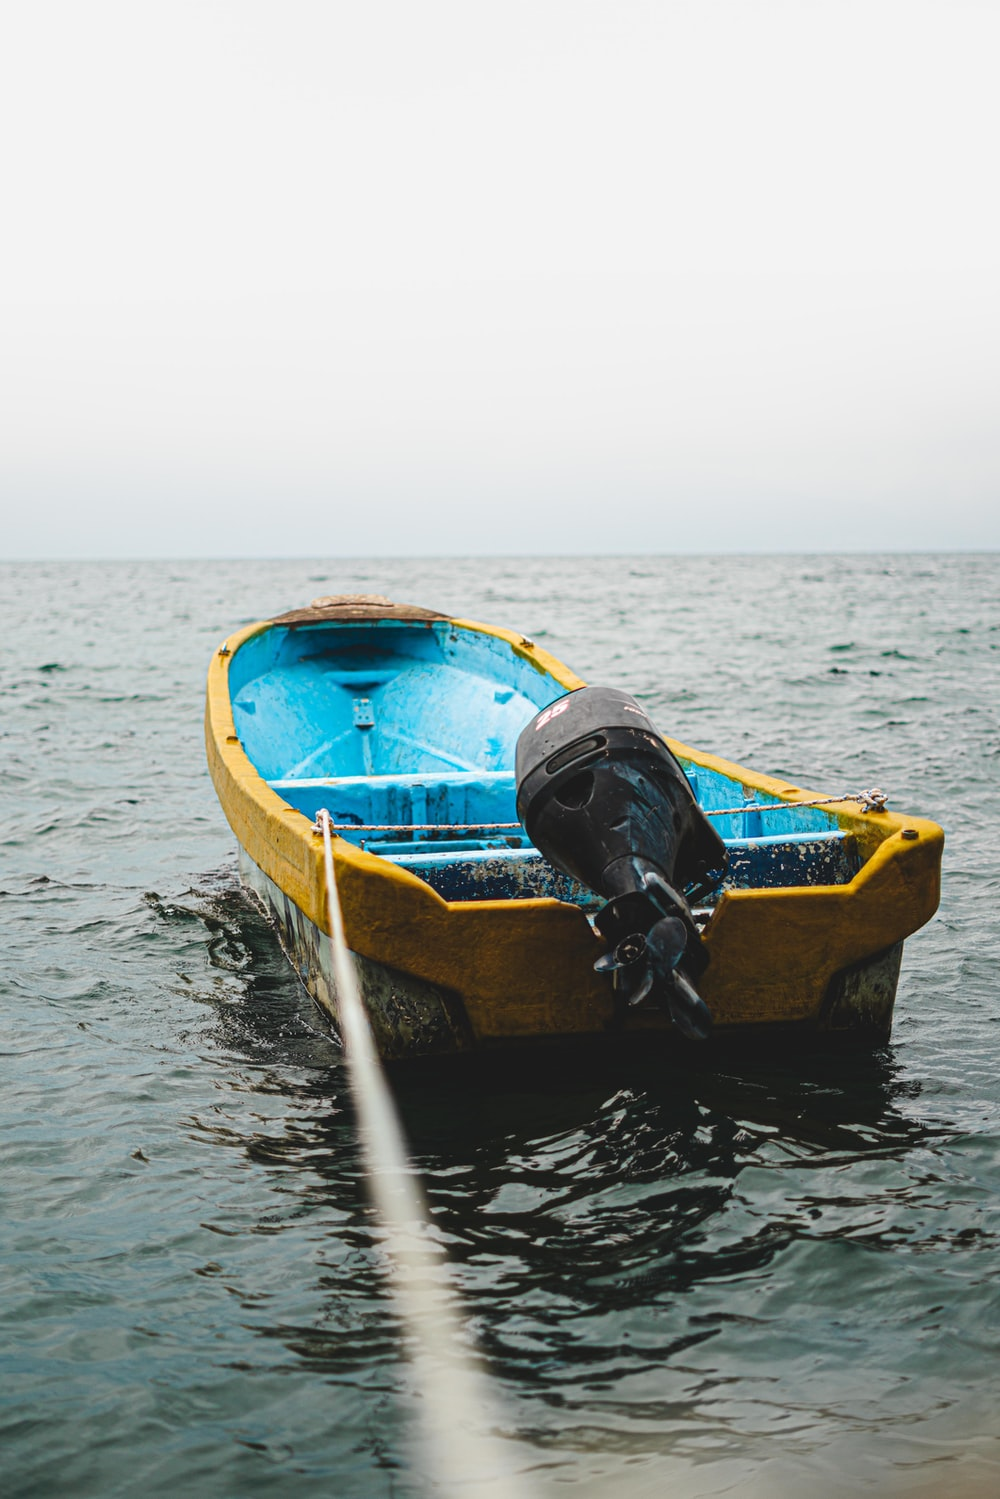 blue and yellow boat on water during daytime